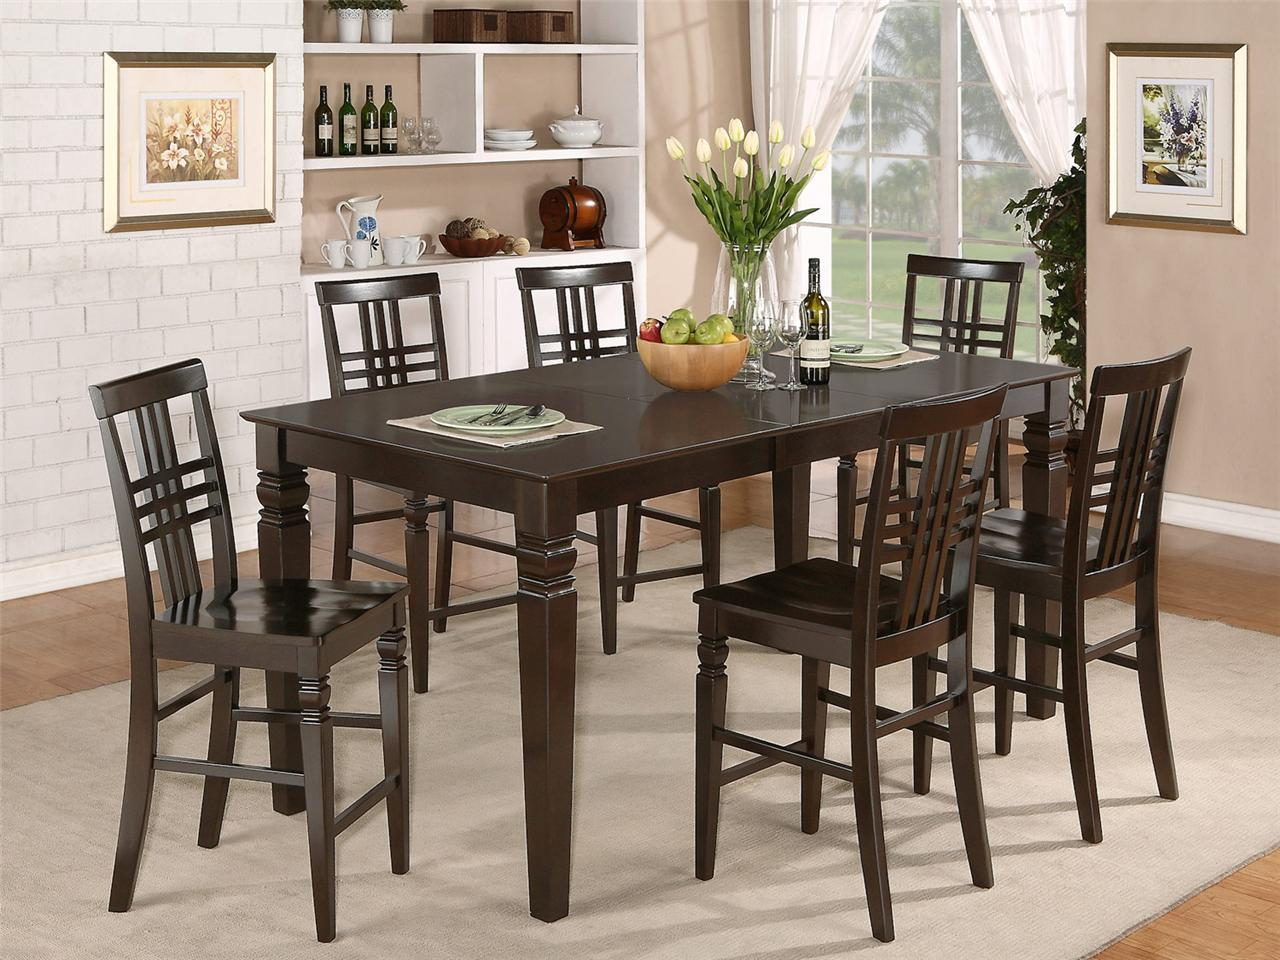 7pc rectangular counter height dining room table set 6 for Dining table set for 6